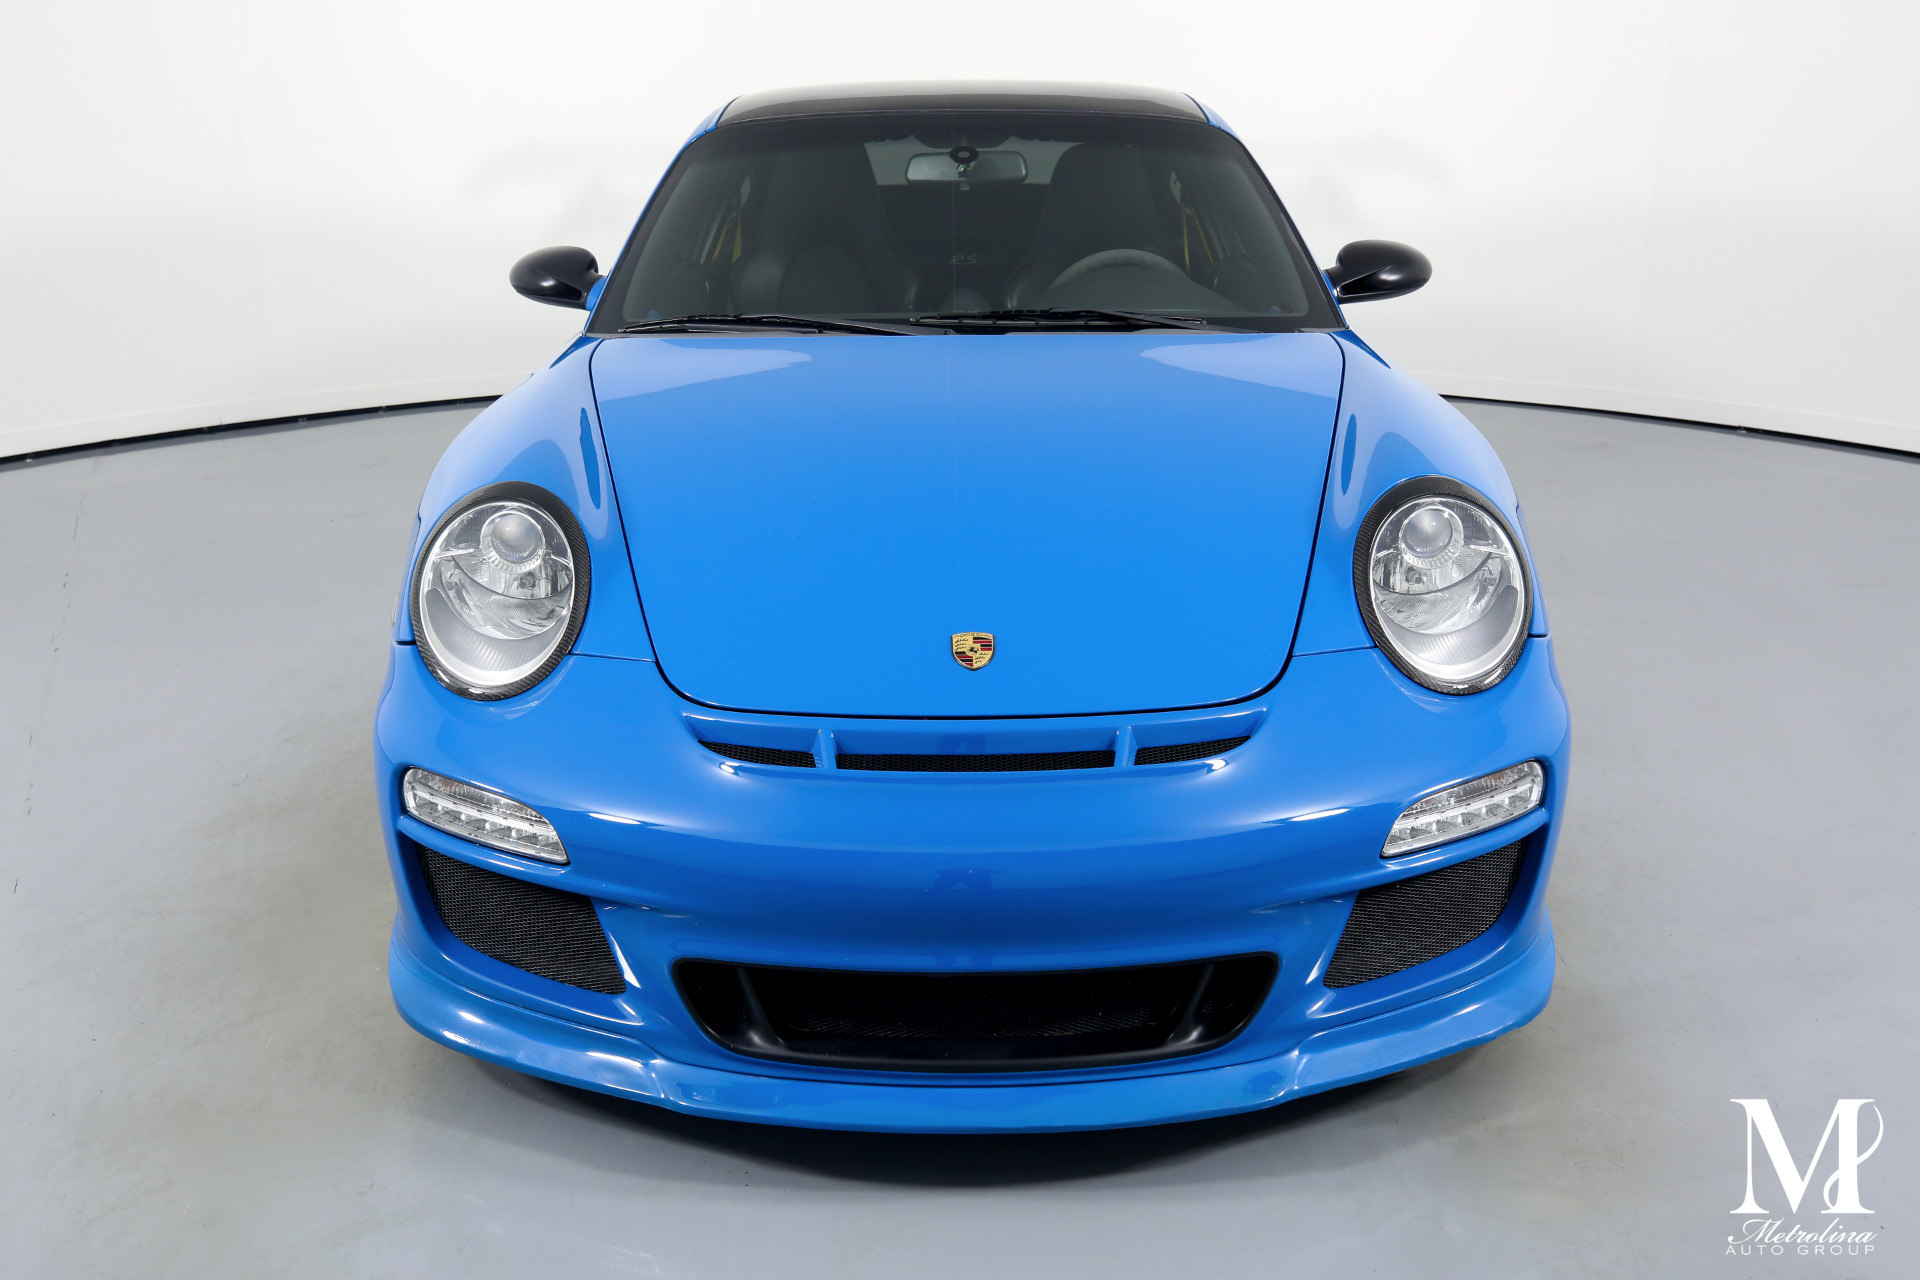 Used 2007 Porsche 911 GT3 for sale $99,996 at Metrolina Auto Group in Charlotte NC 28217 - 3